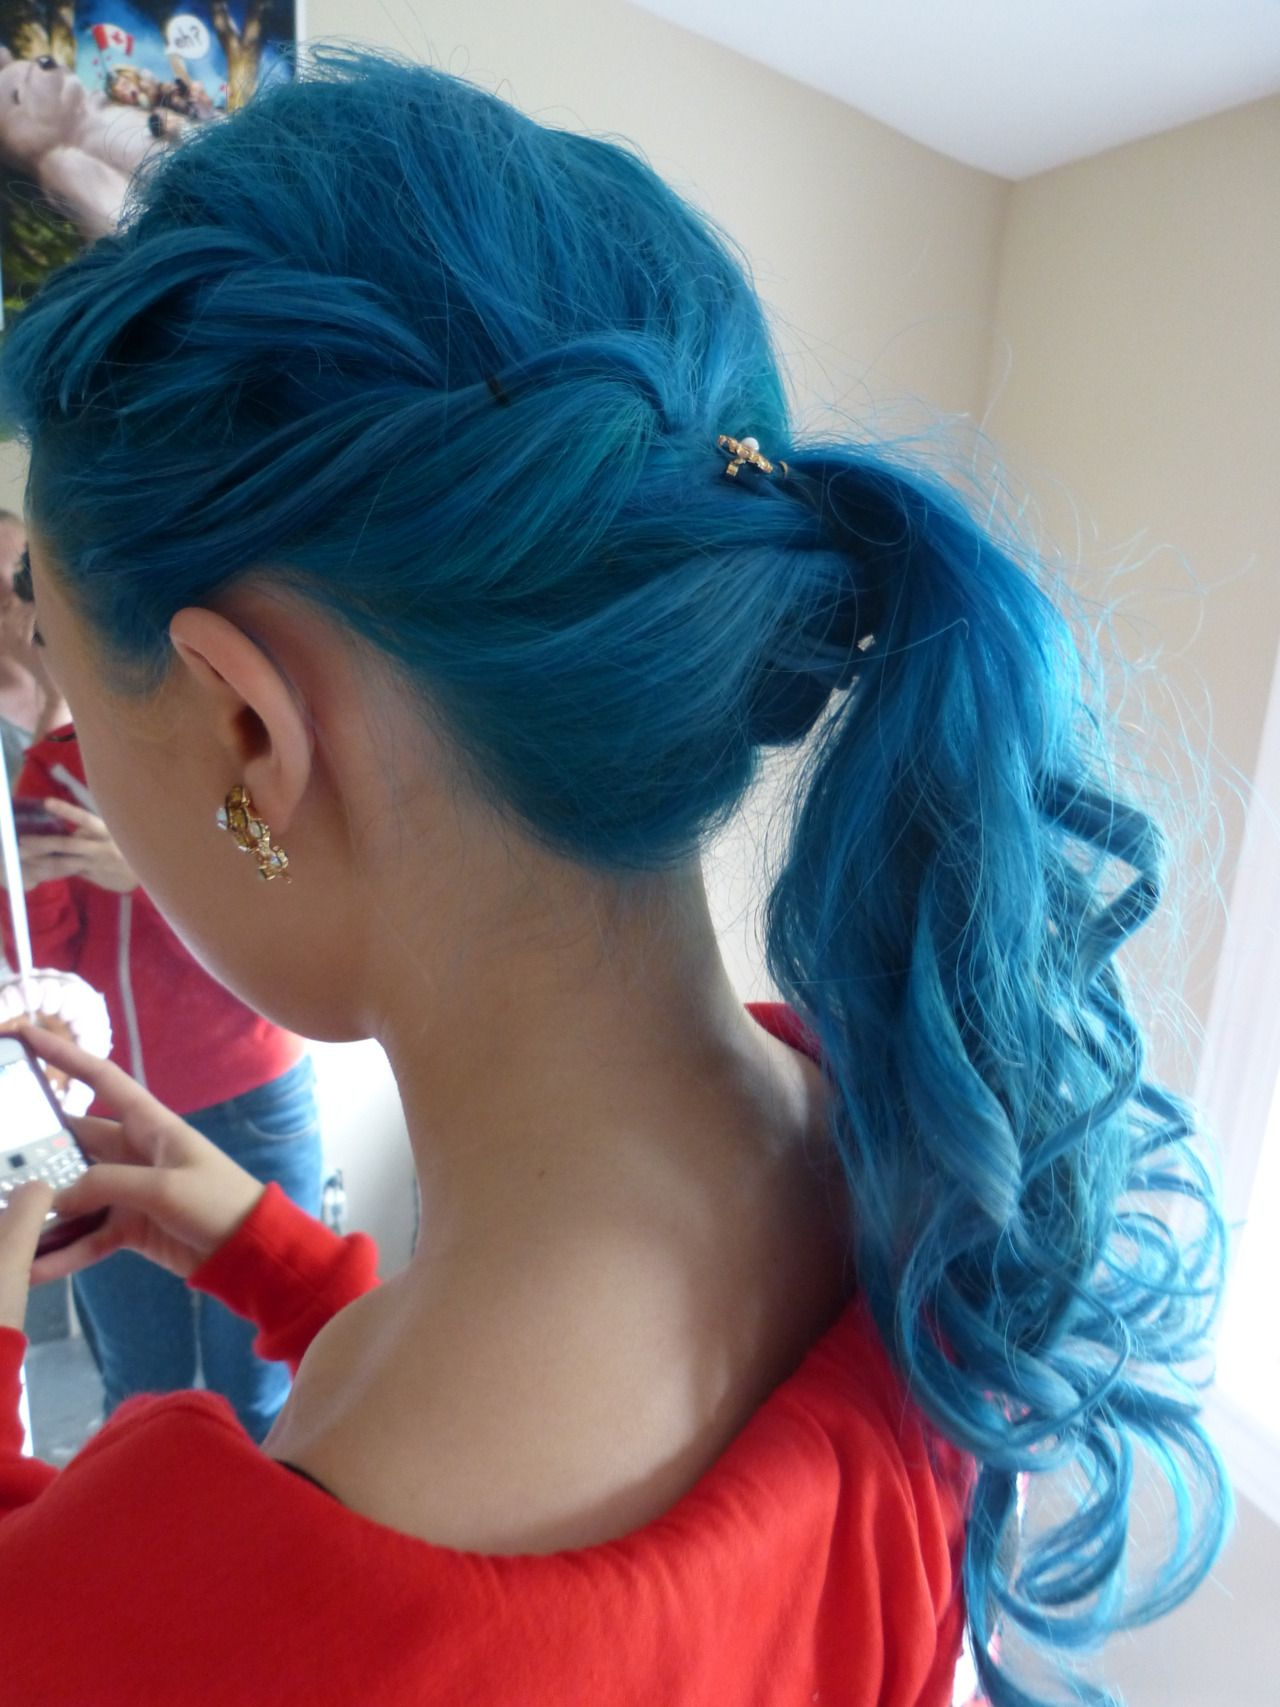 I love this hair style. There is no tutorial here but I will figure out how to do this.  I like the hair color too, but I don't think my work would like if I had blue hair